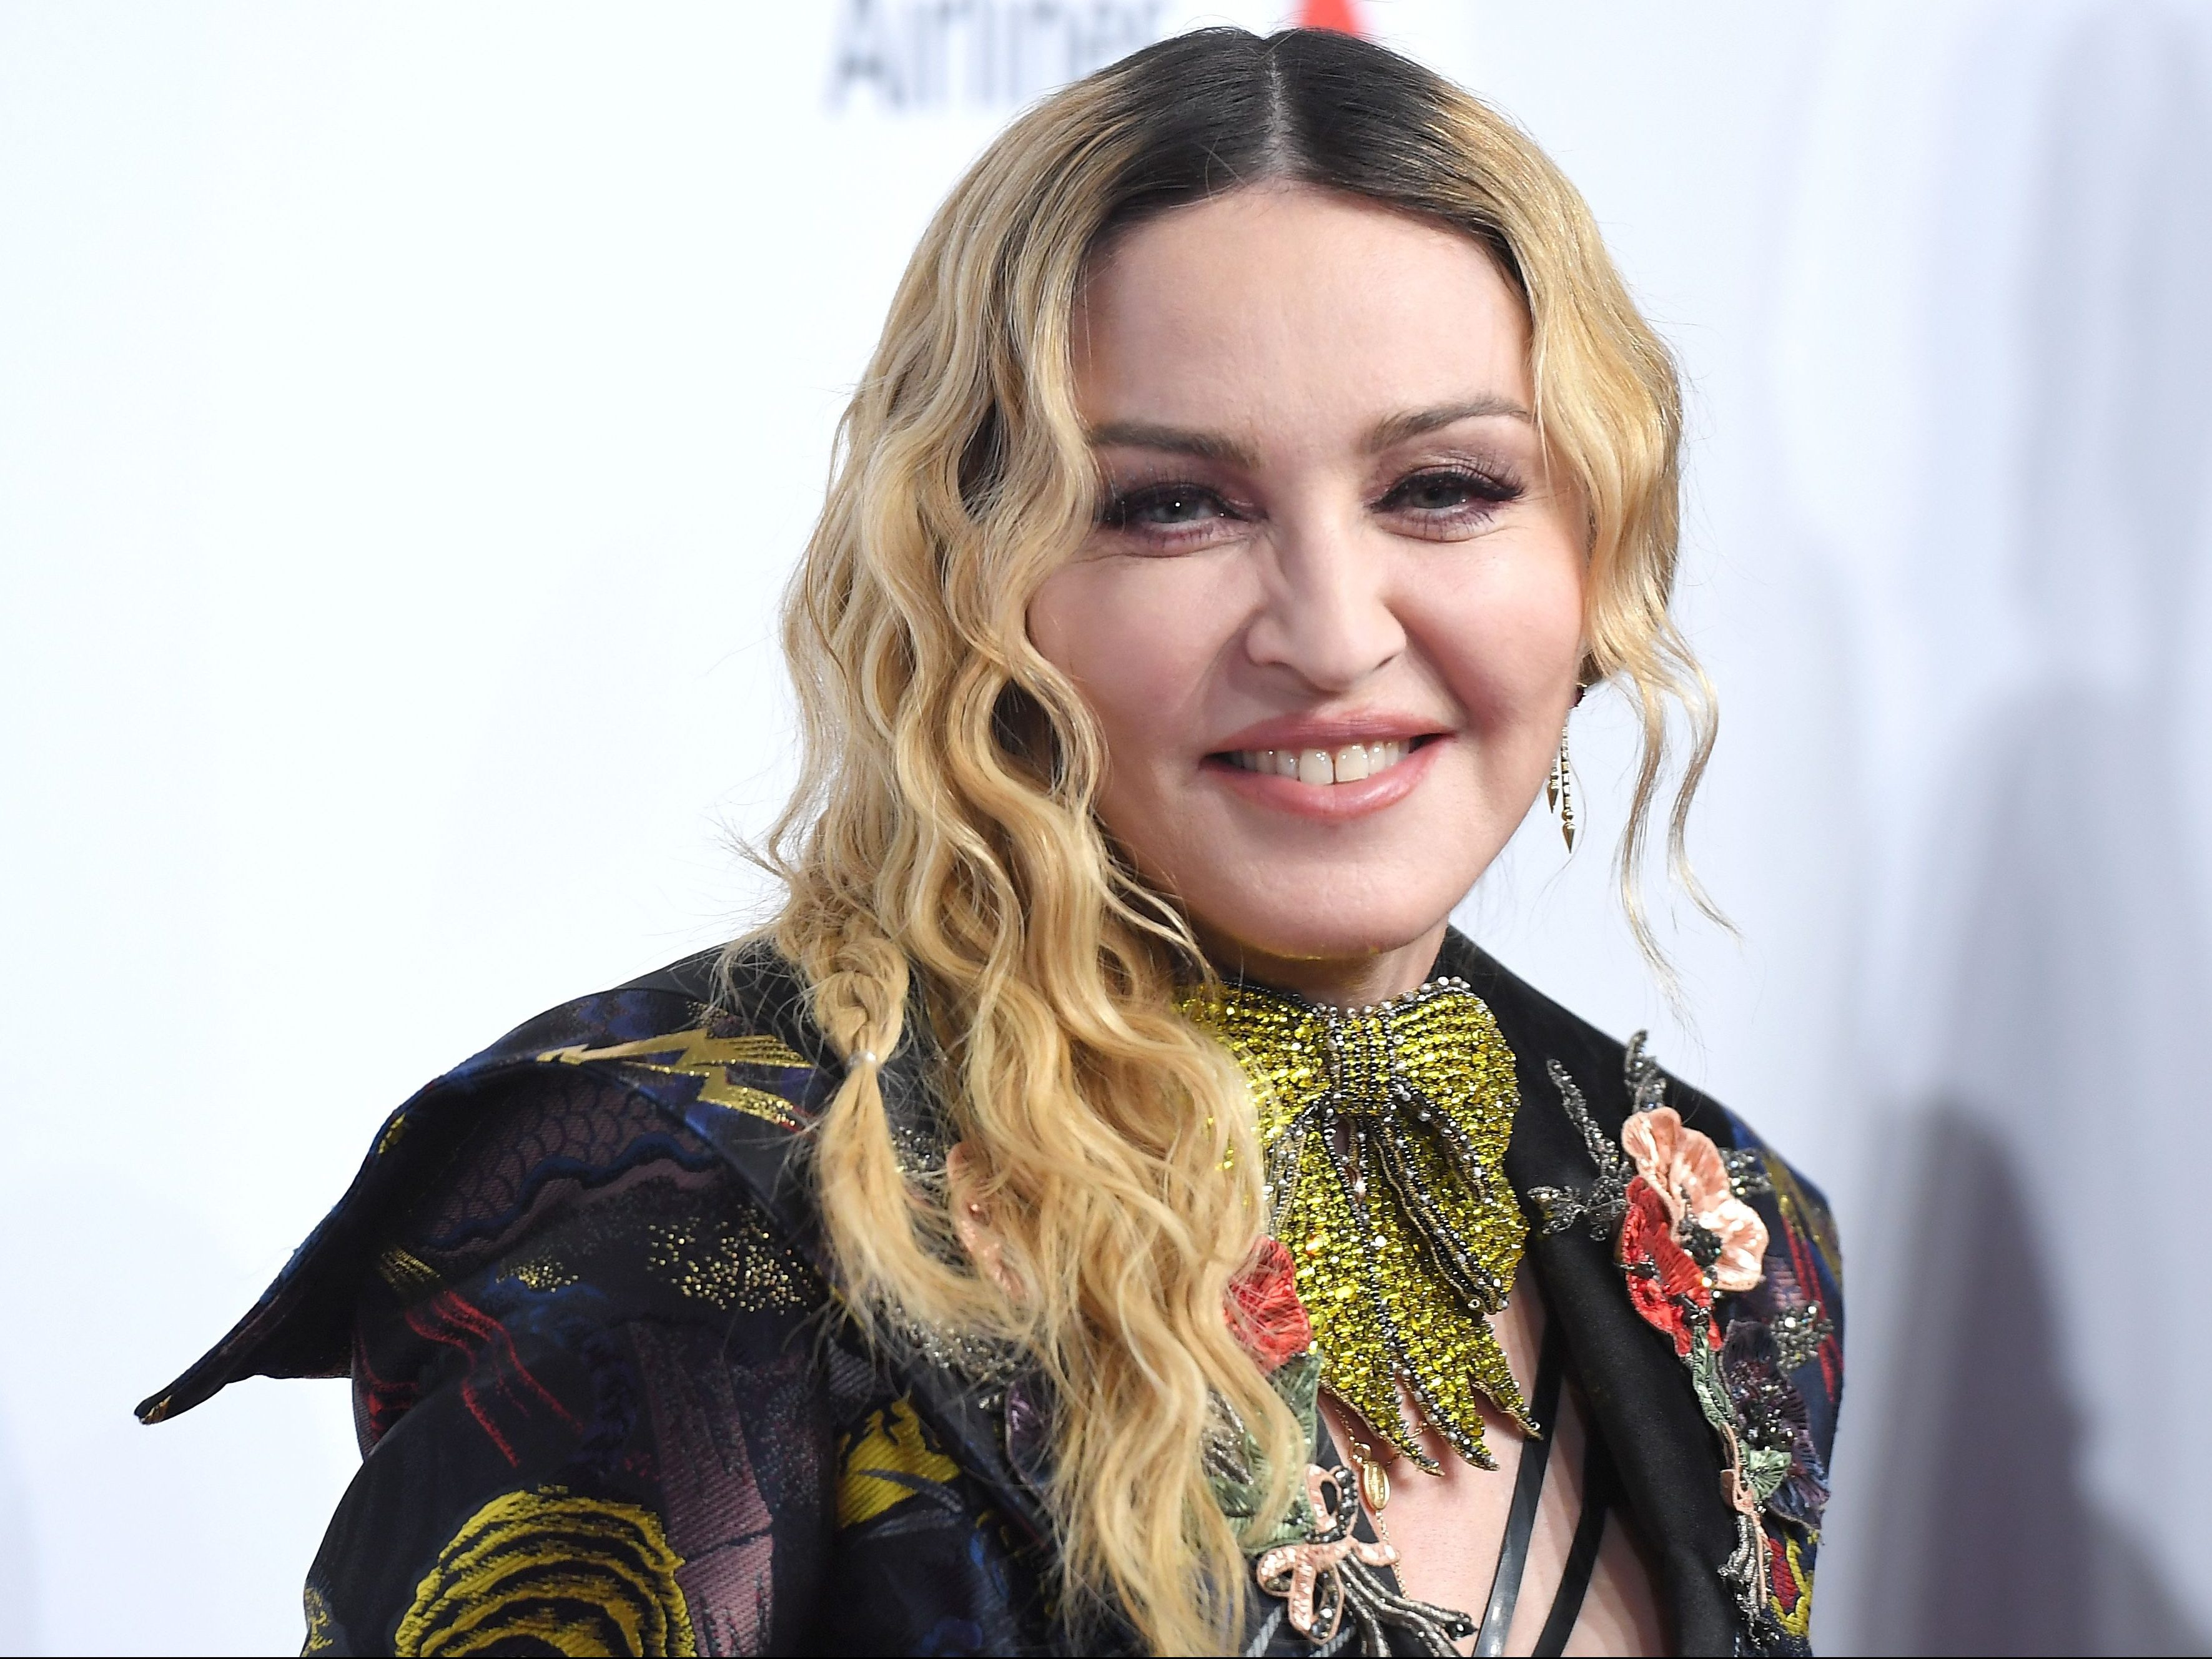 Madonna New Hairstyle 2018 Curly Hairs